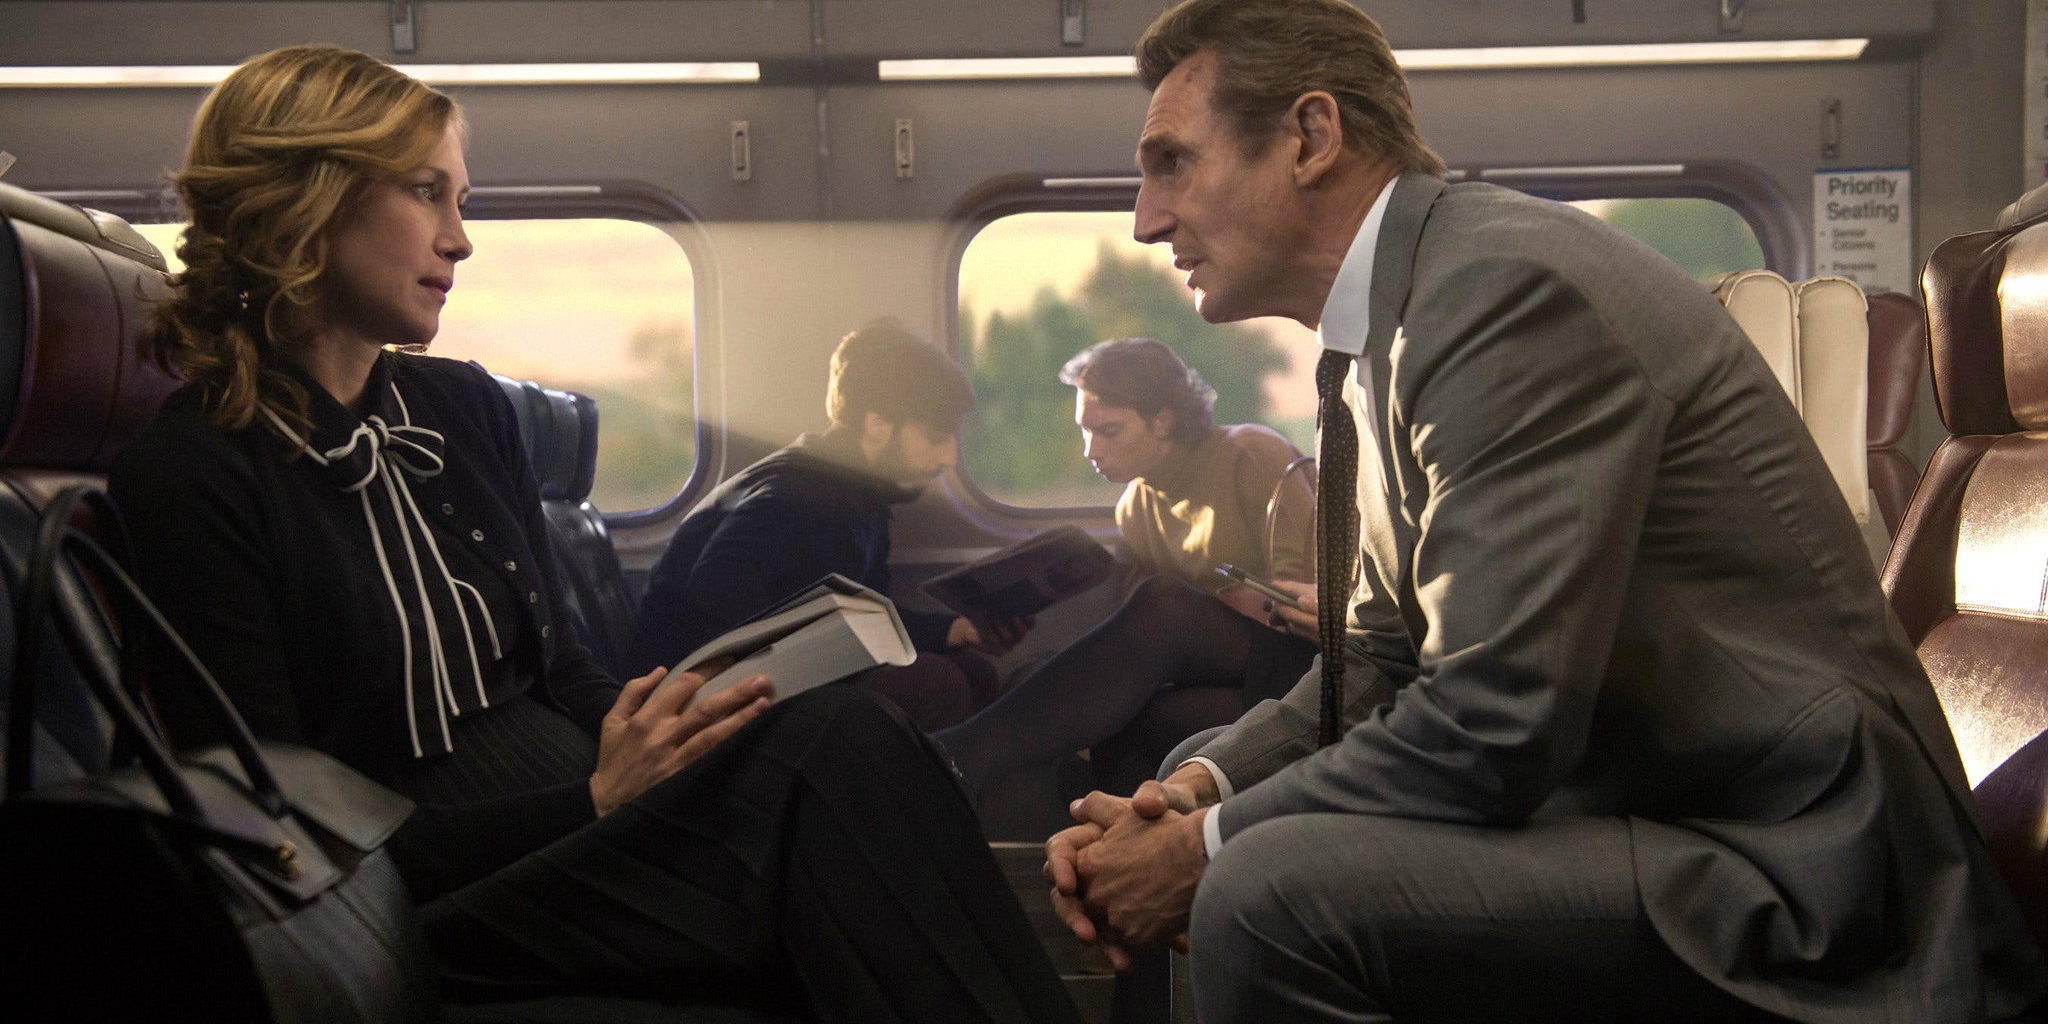 #LiamNeeson's back in action: https://t.co/wQFOLdBqtD @TheCommuterFilm #verafarmiga https://t.co/mJ4XPOlxLQ